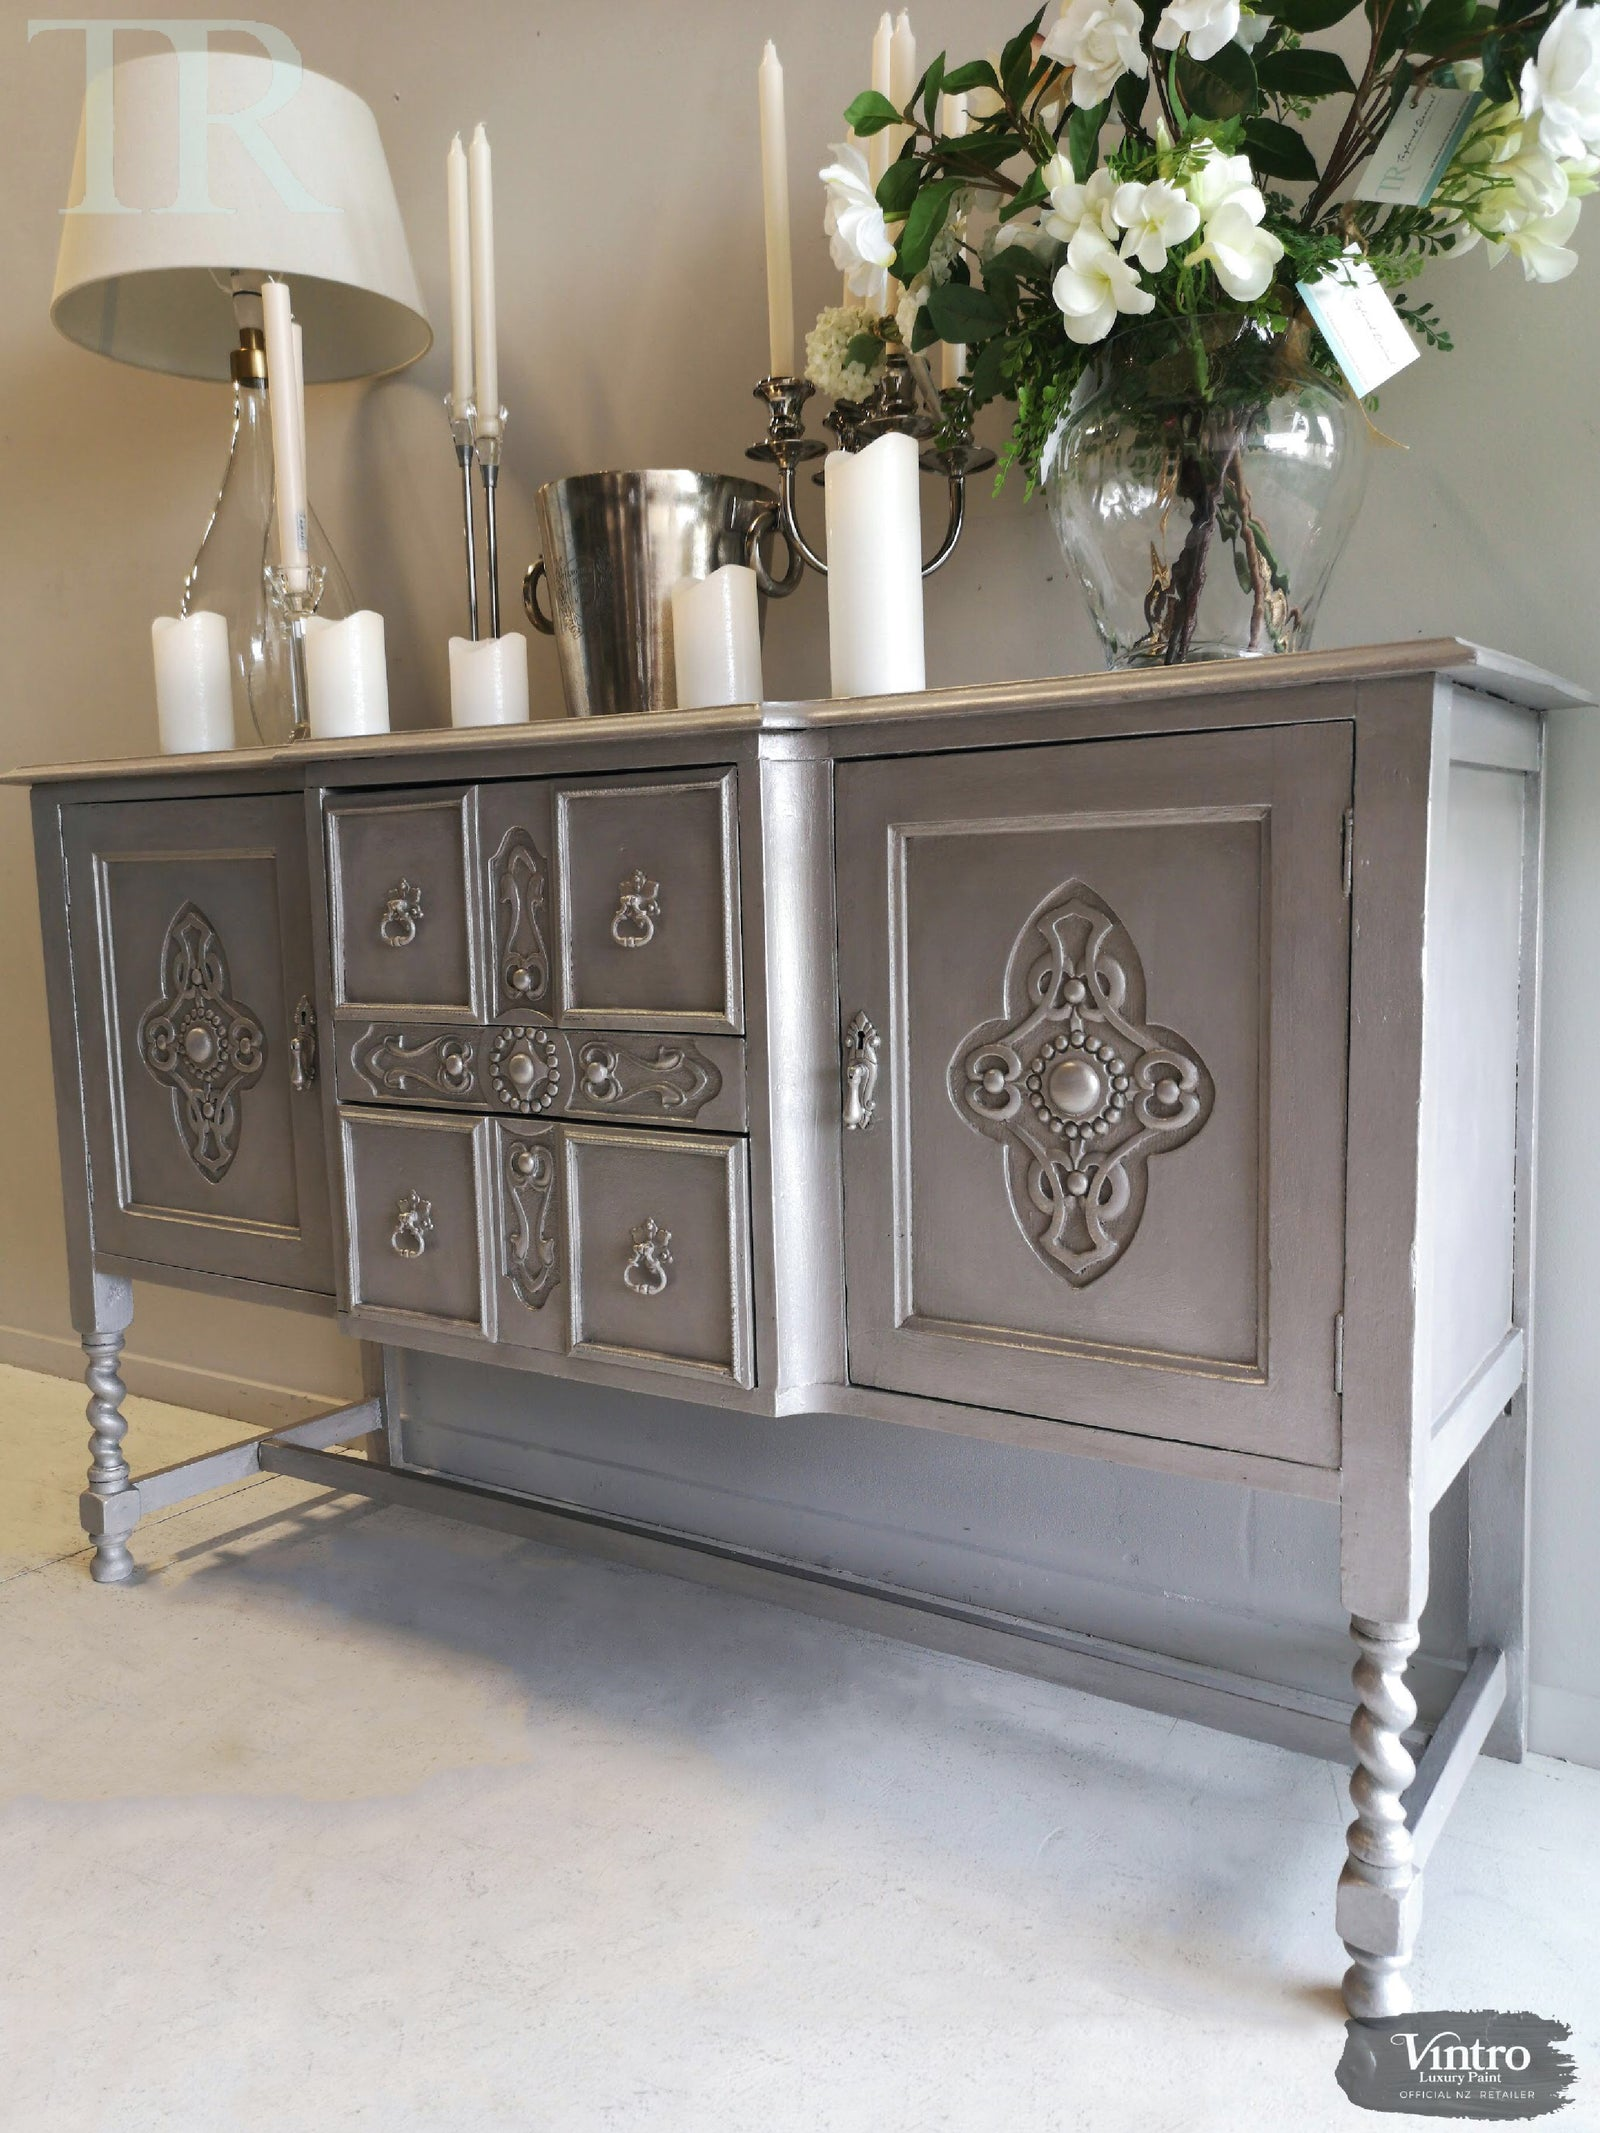 Cassandra Hand painted Antique Sideboard (currently on hold)